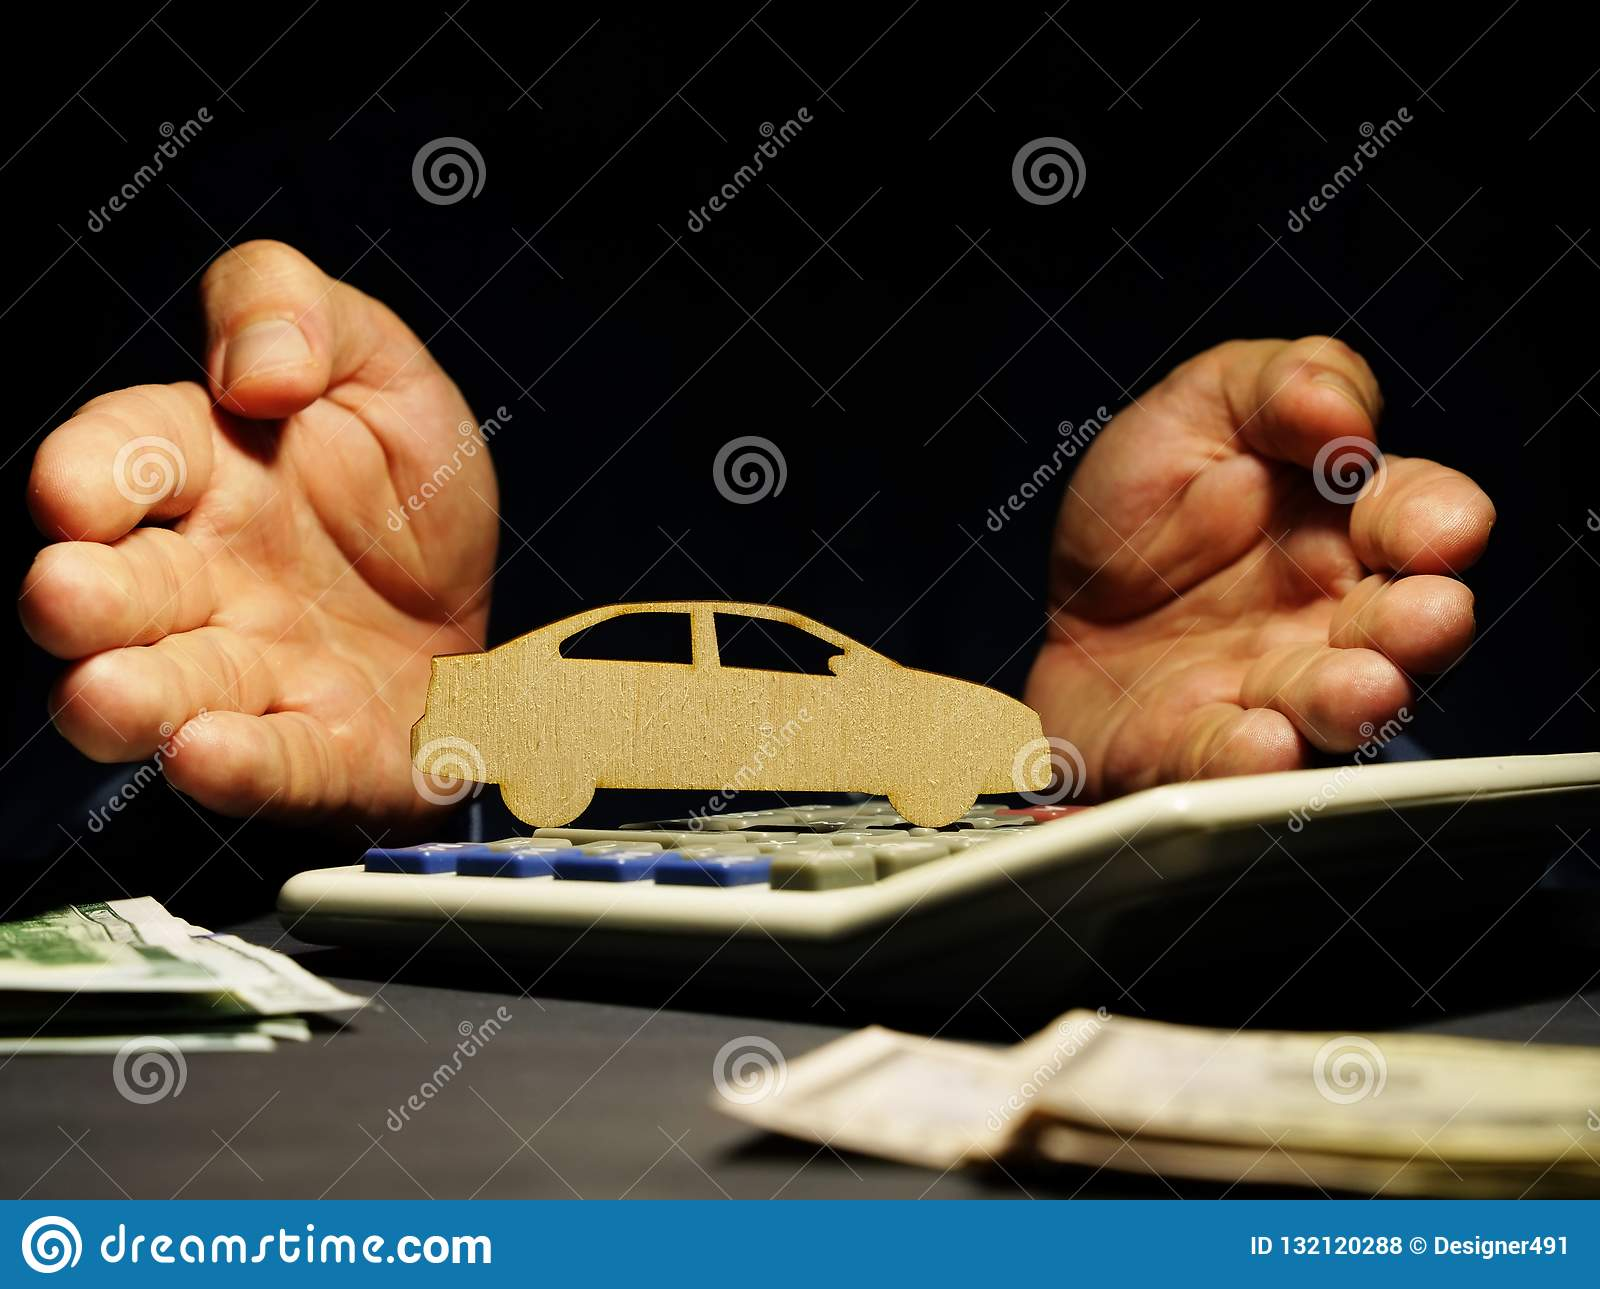 Car loan. Hands offers model of vehicle